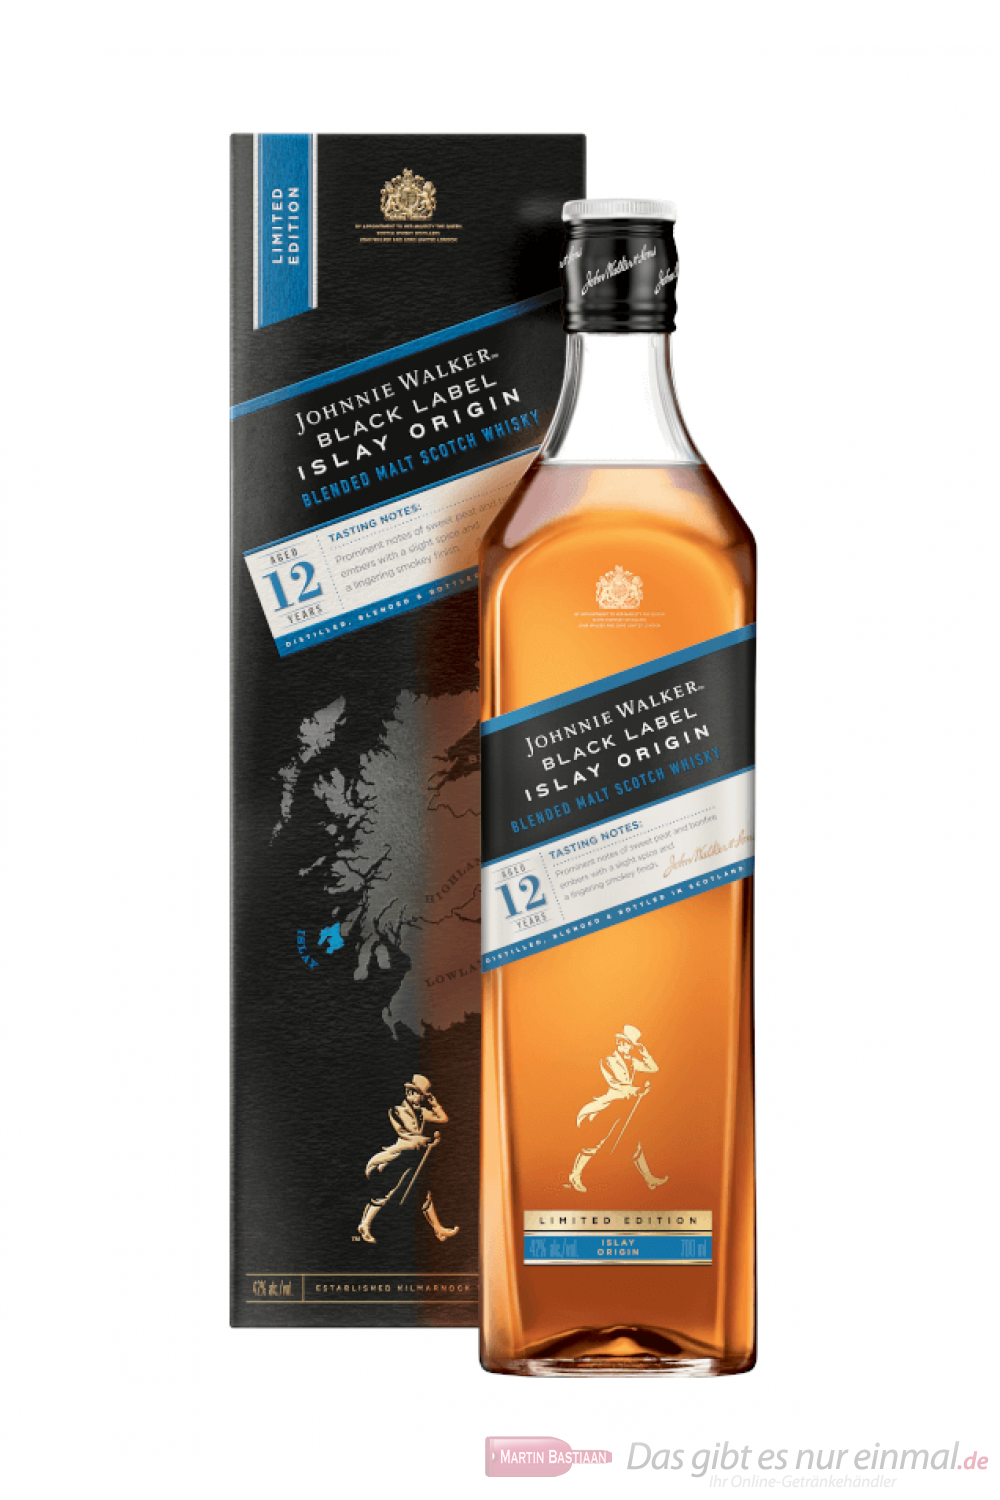 Johnnie Walker Black Islay Origin Blended Scotch Whisky 0,7l